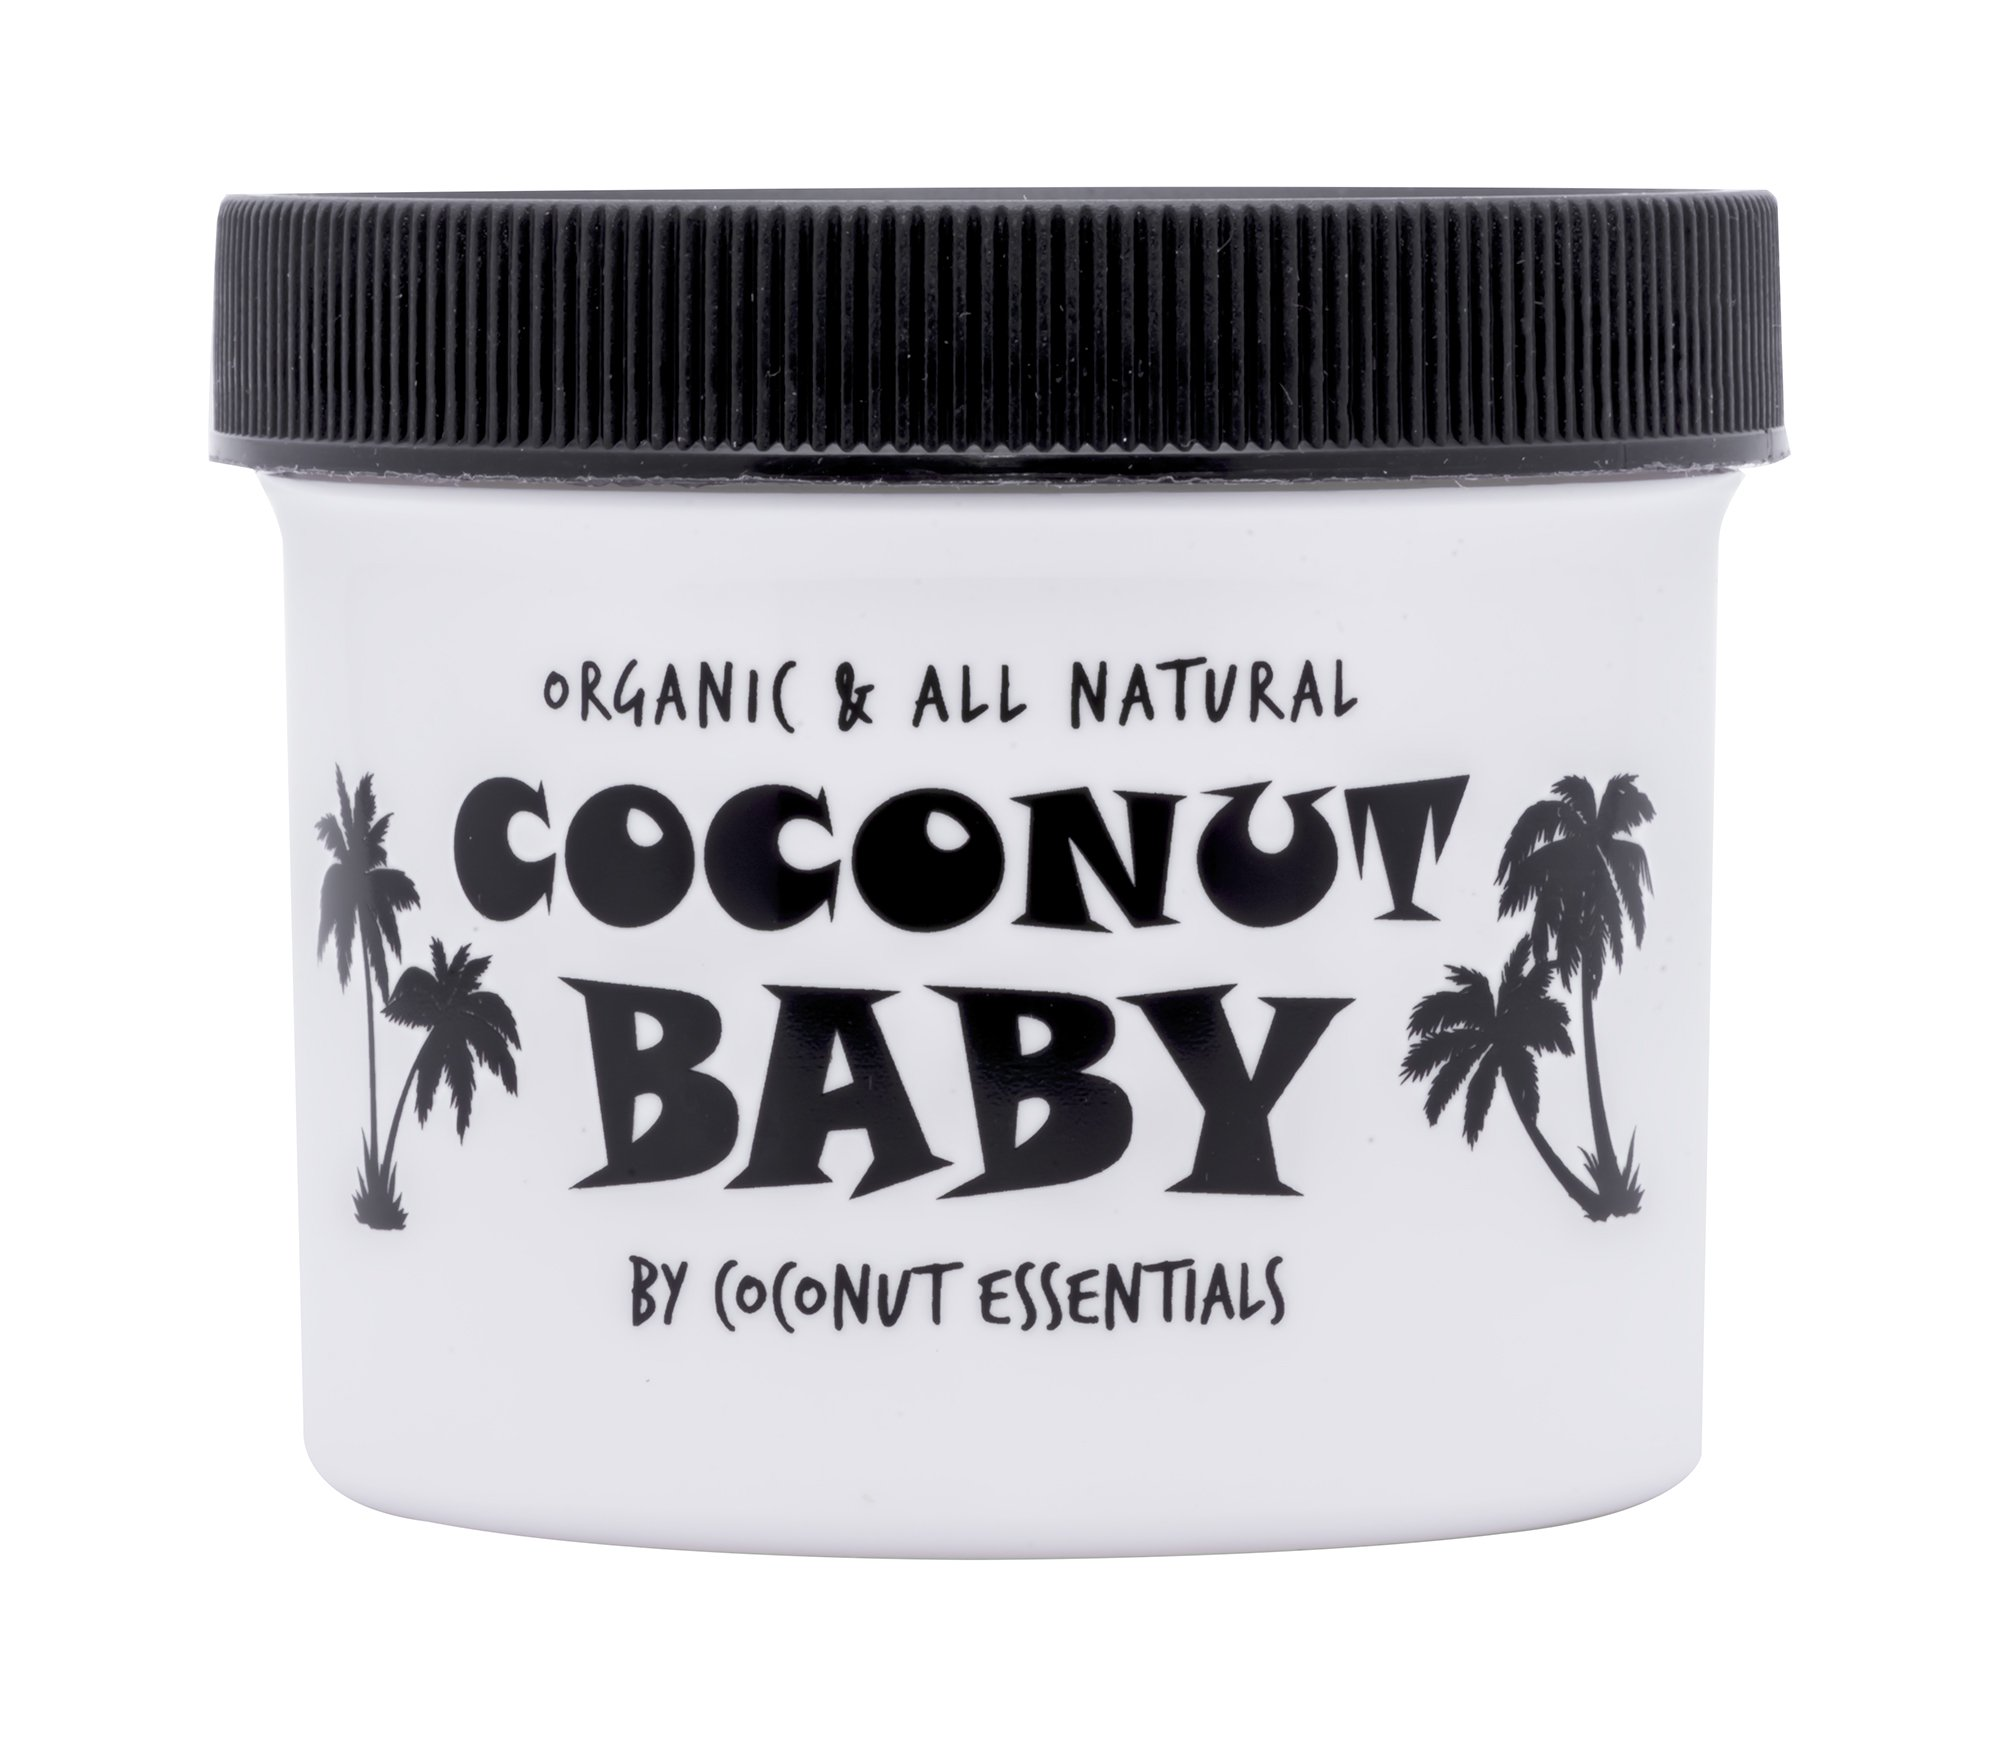 COCONUT BABY OIL Organic Moisturizer - Vitamin E Oil for Hair and Skin Care - Cradle Cap Treatment , Eczema and Psoriasis Relief - Massage - Sensitive Skin, Diaper Rash Guard, and Stretch Marks - 4 oz